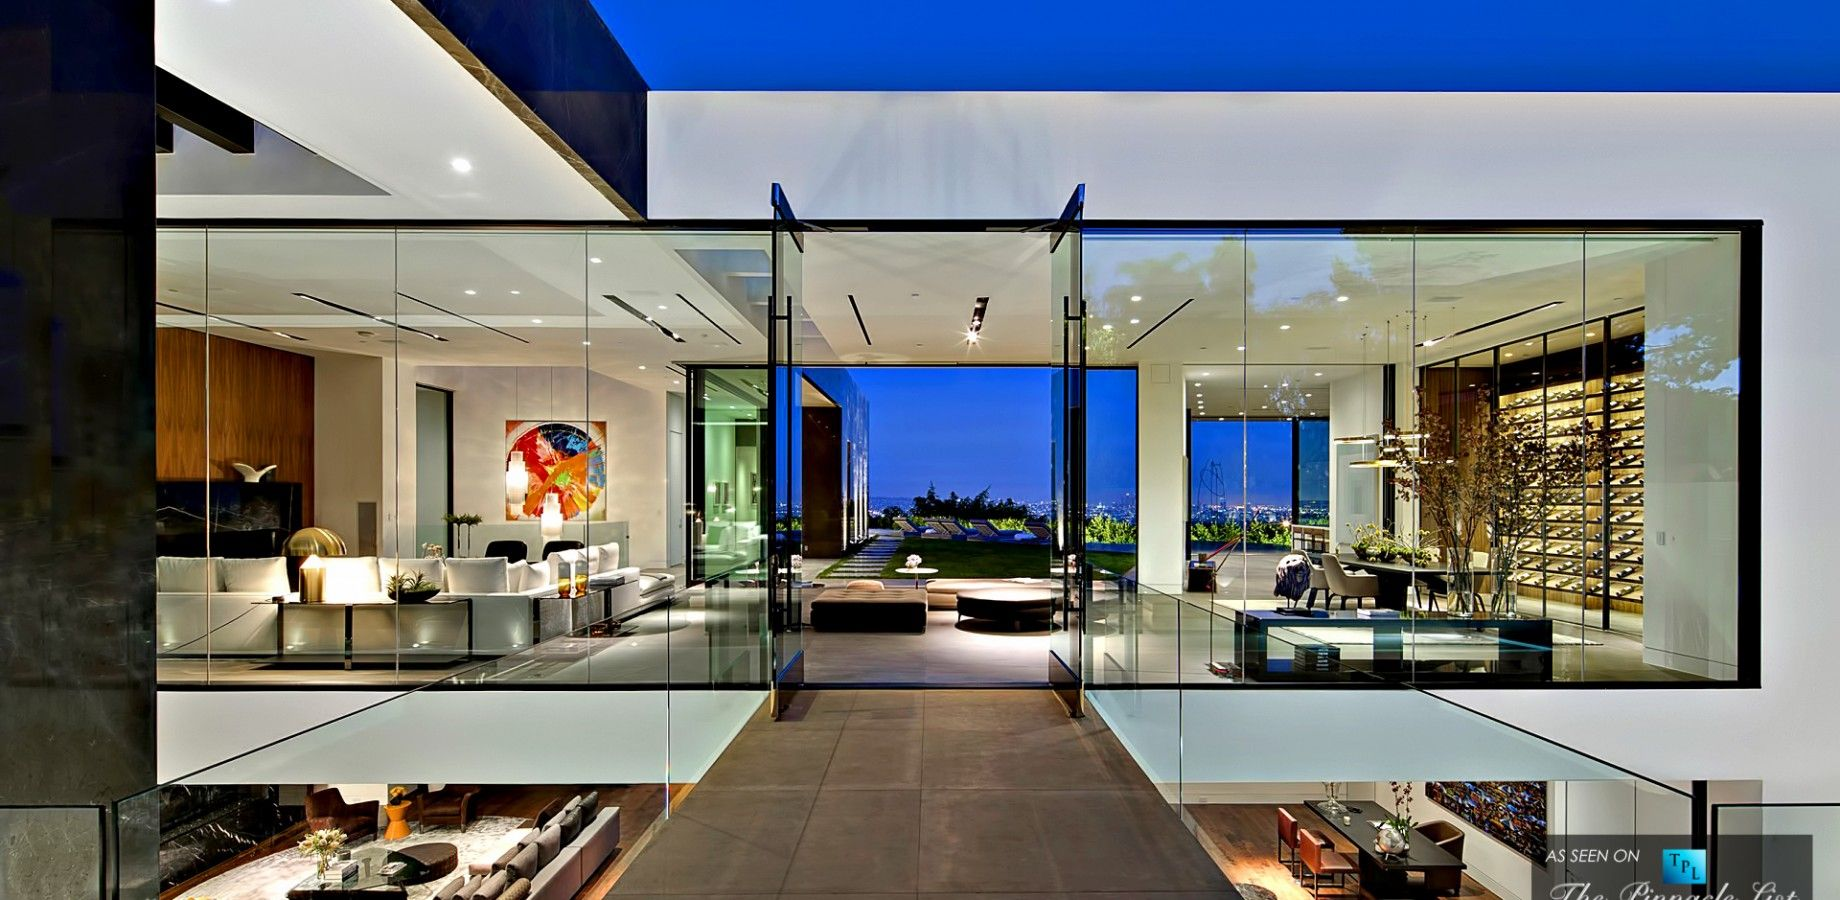 2995 million luxury residence 1442 tanager way los angeles ca luxury homes interiormodern - Modern Luxury Homes Interior Design